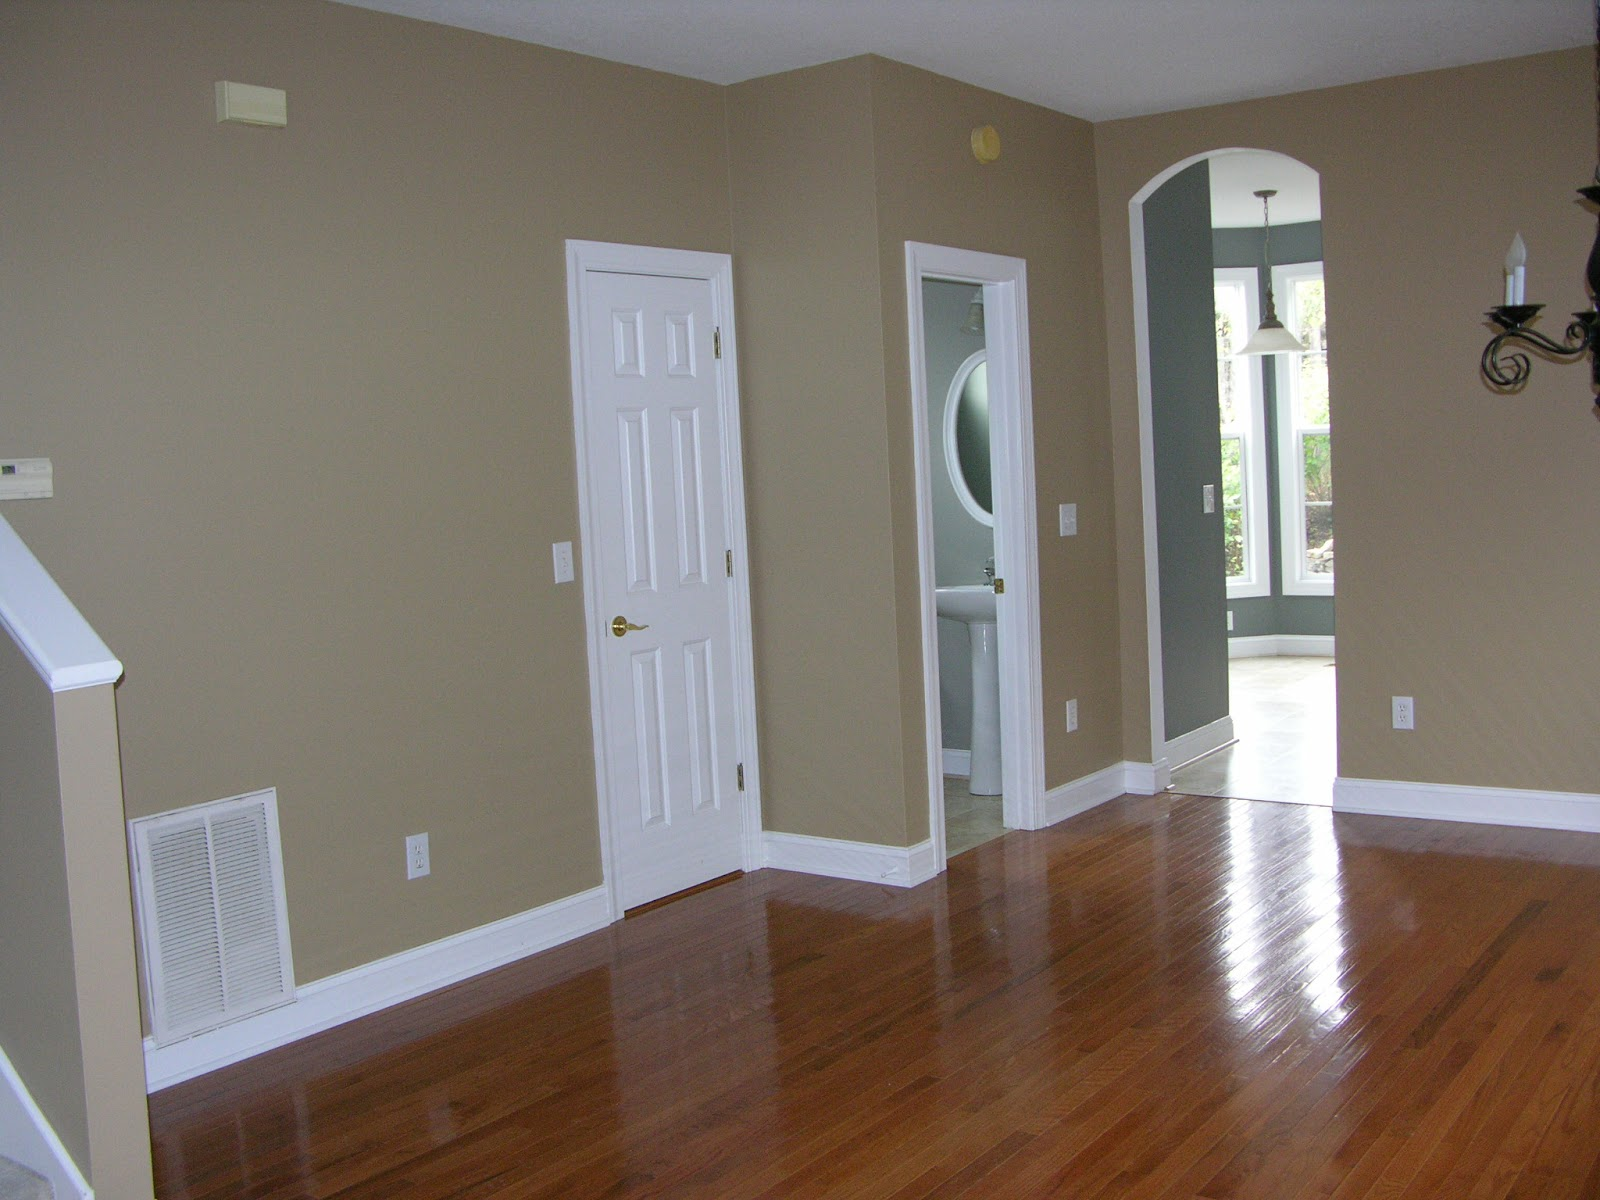 choosing paint colors for interior doors - Choosing Paint Colors For Rooms